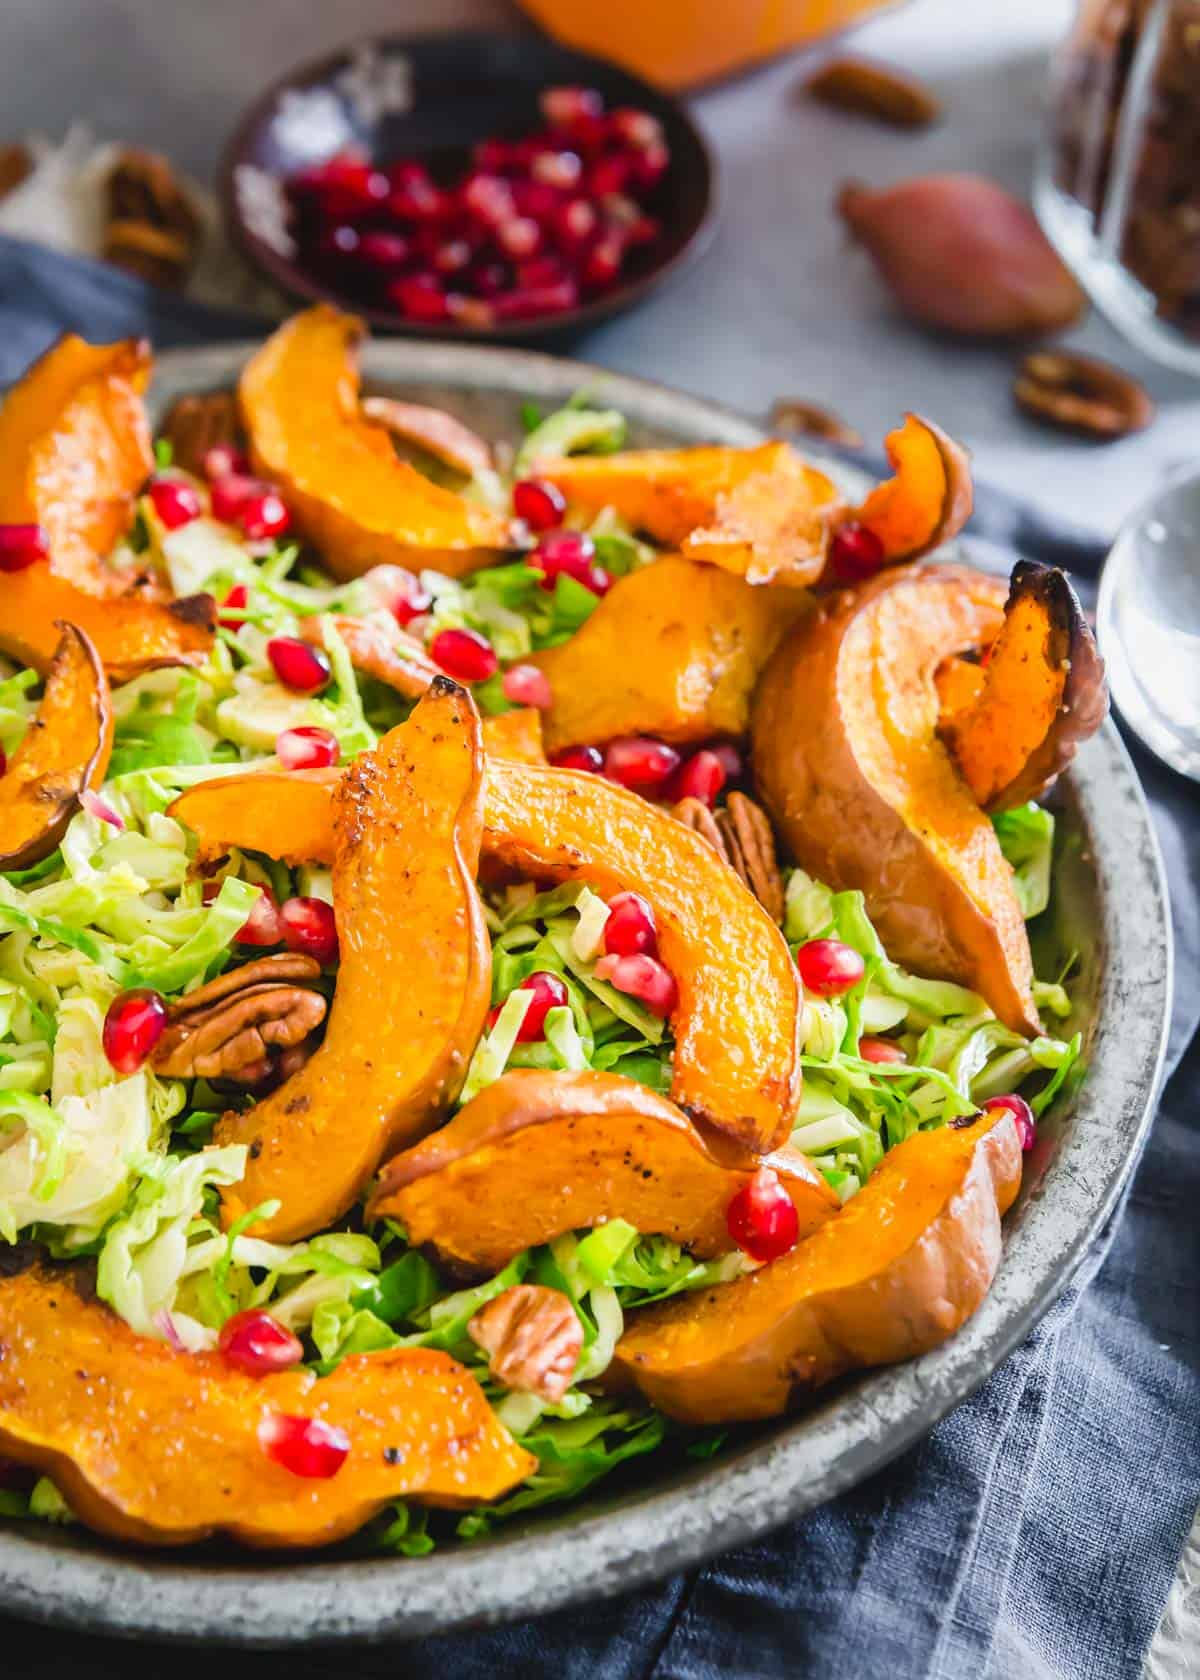 Roasted koginut squash salad with shaved brussels sprouts and pomegranates.